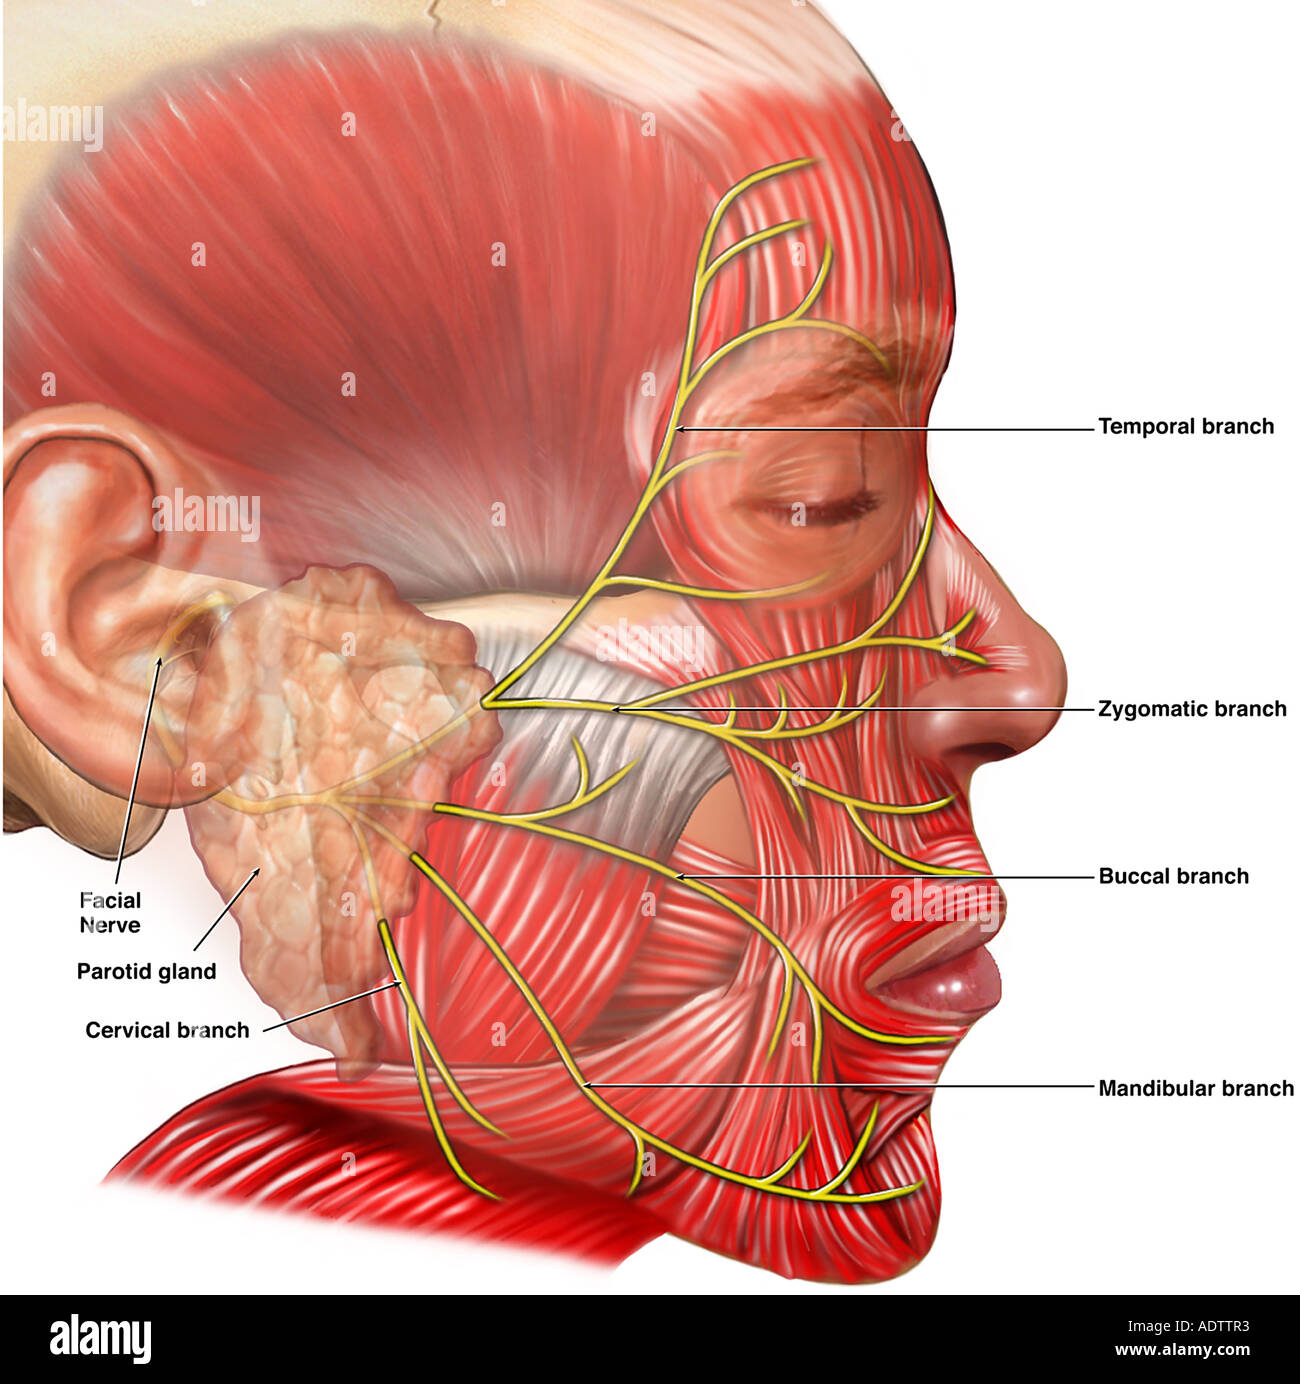 Facial Nerve Stock Photos & Facial Nerve Stock Images - Alamy